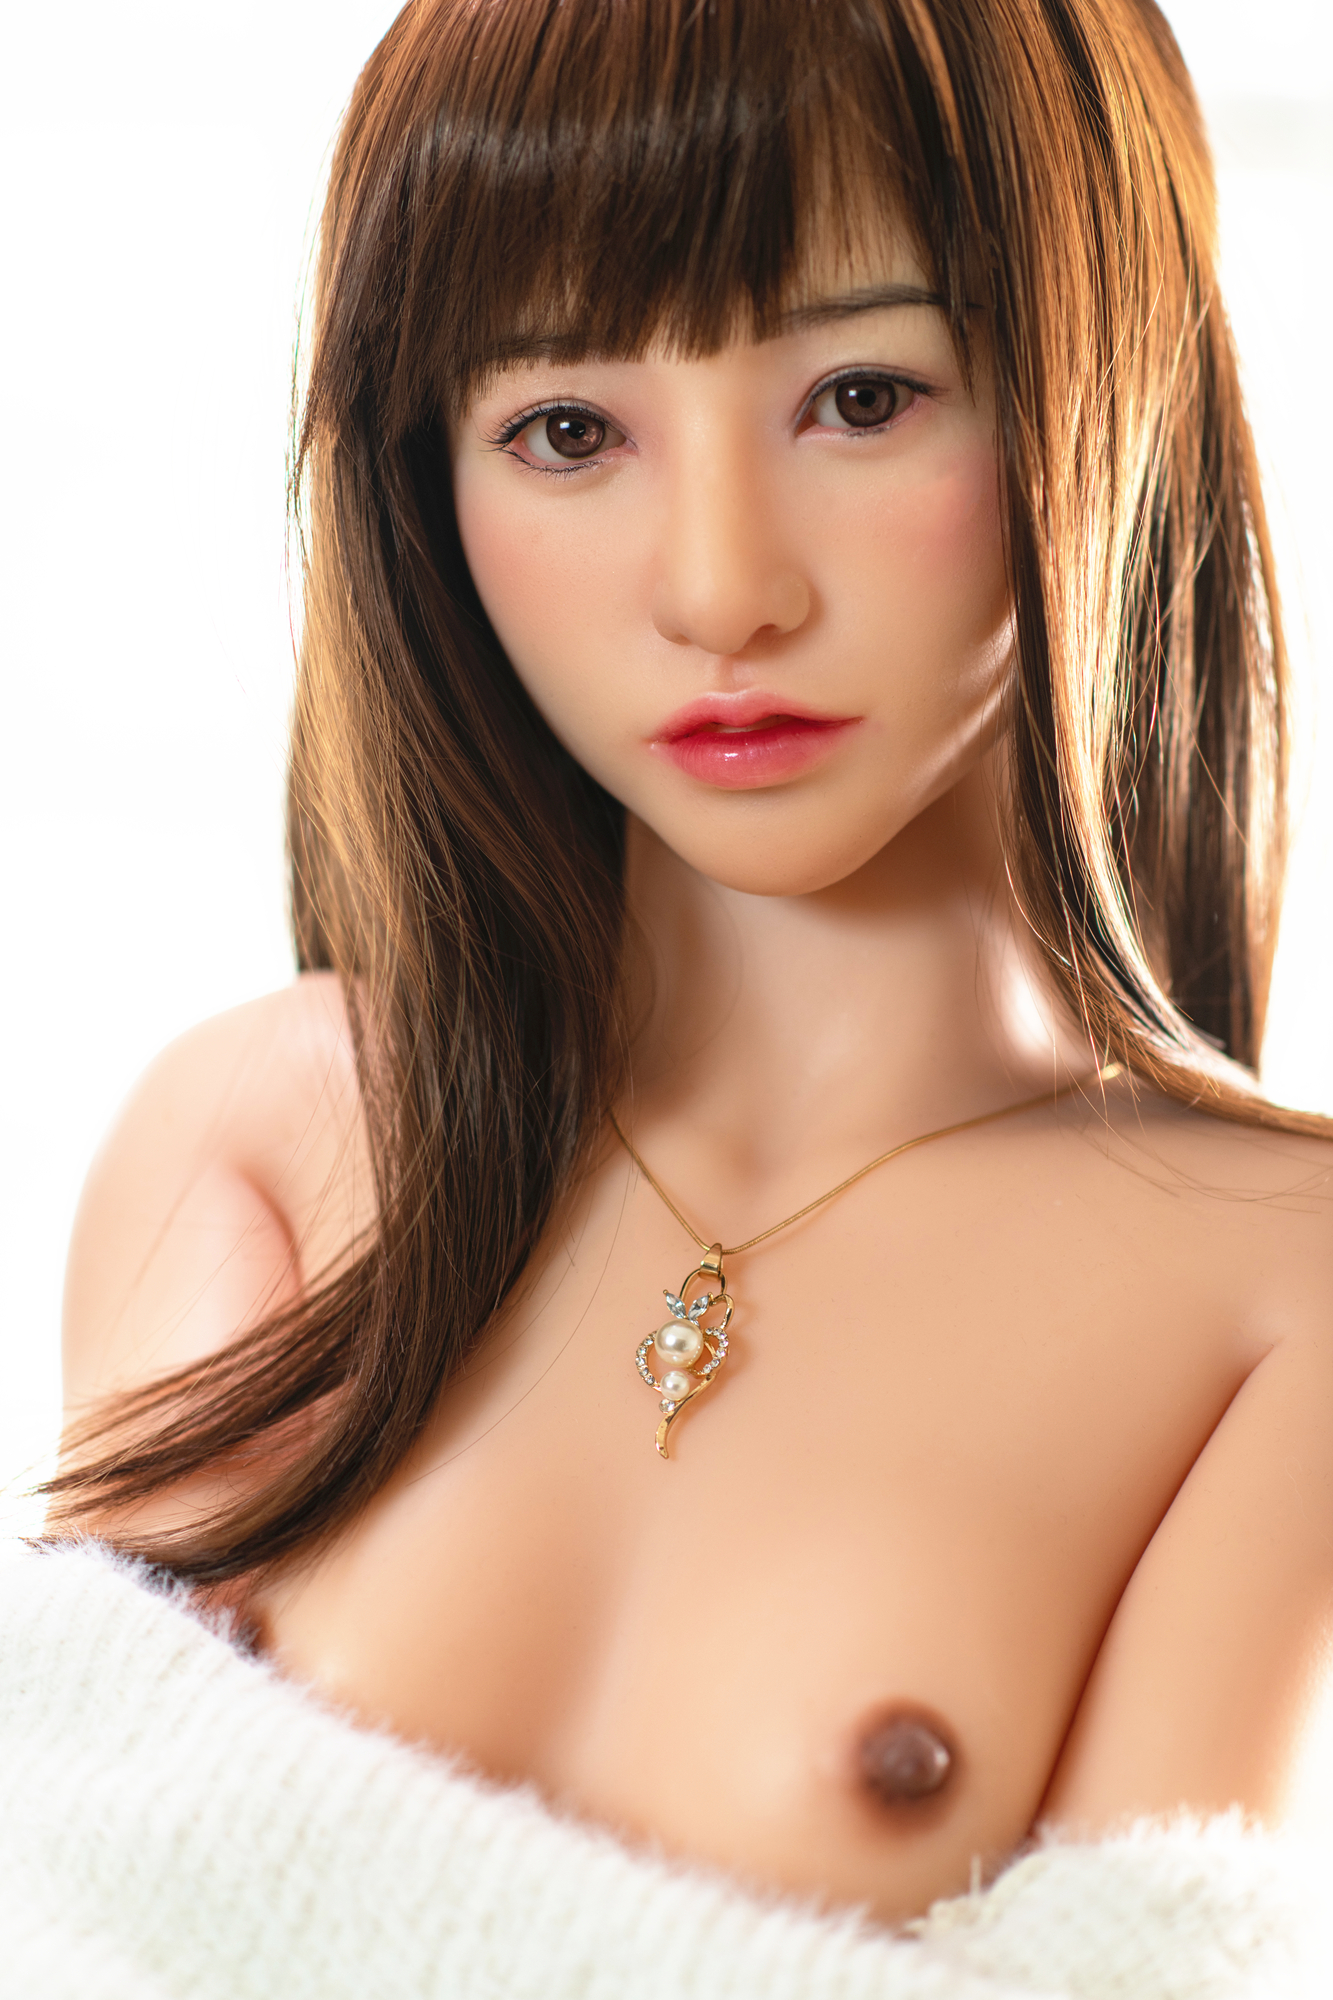 For Top 100 Customers 【Amatsuka Moe 's Autograph on Formal Product Certificate】Supervised by Moe Amatsuka AV Actress Silicone Love Doll with RS Class Makeup-Head by Sino Factory  157cm/5.15ft  31kg